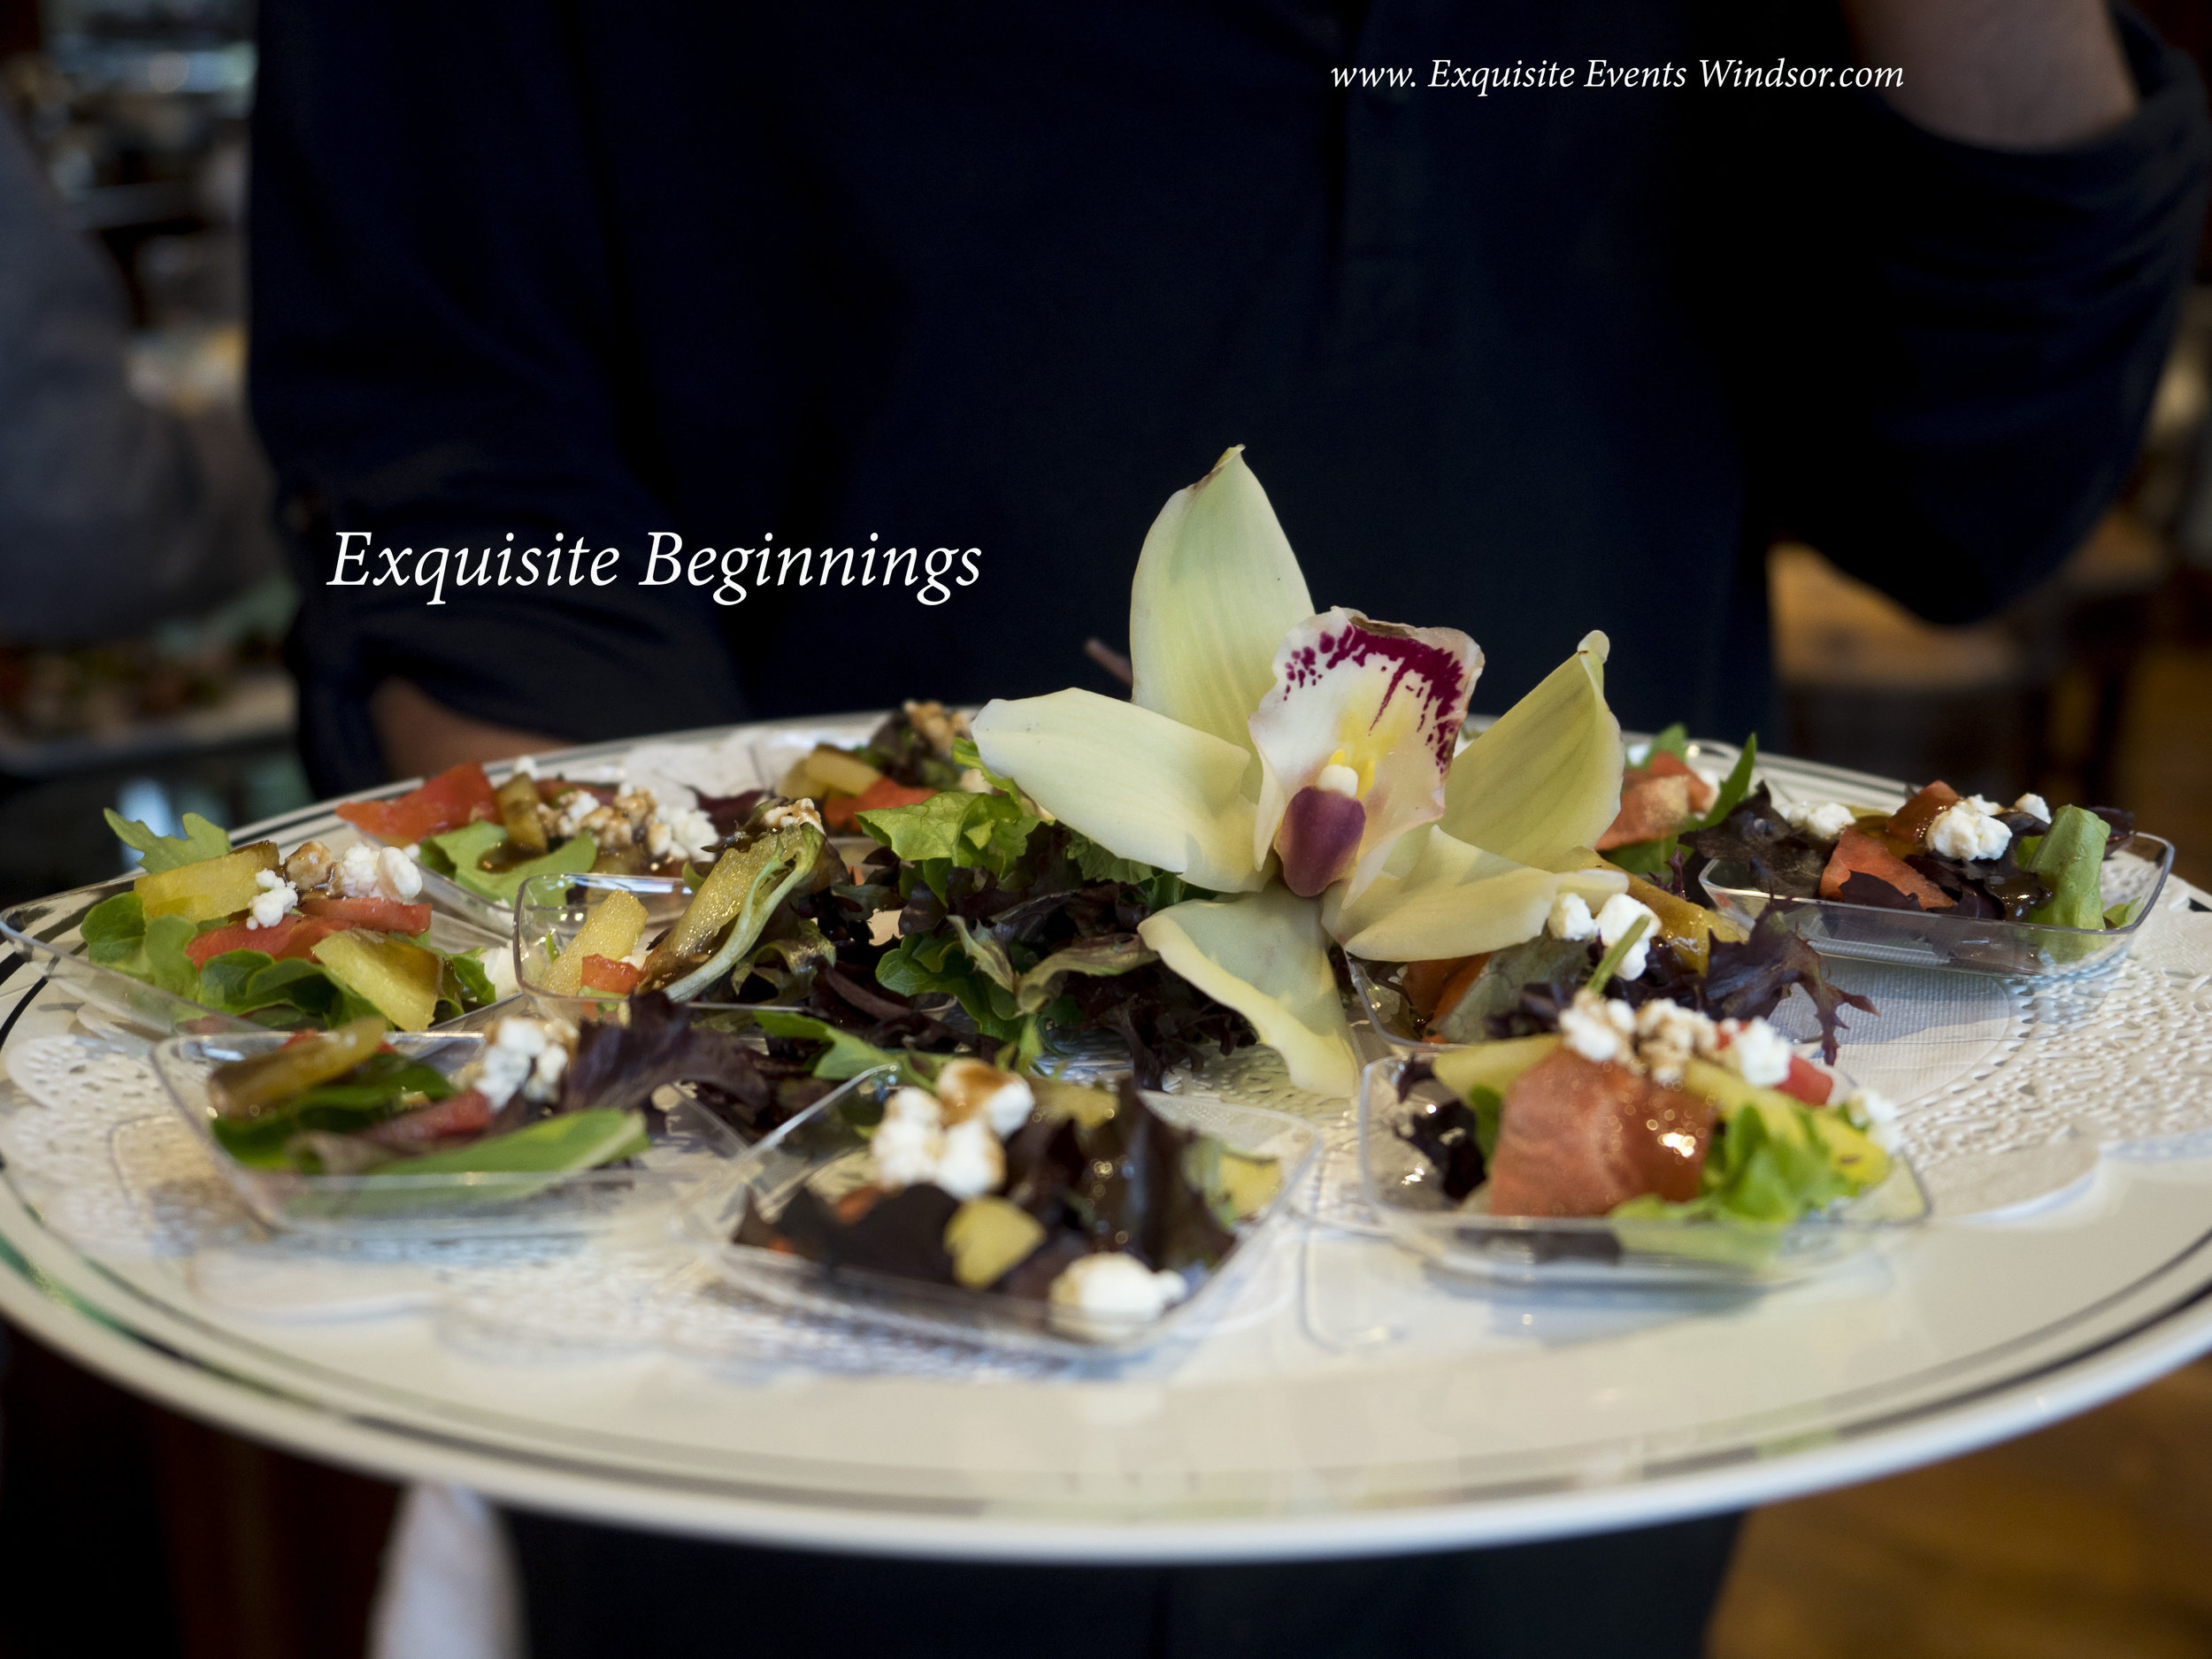 Exquisite Events Windsor Hors D'eourves.jpg